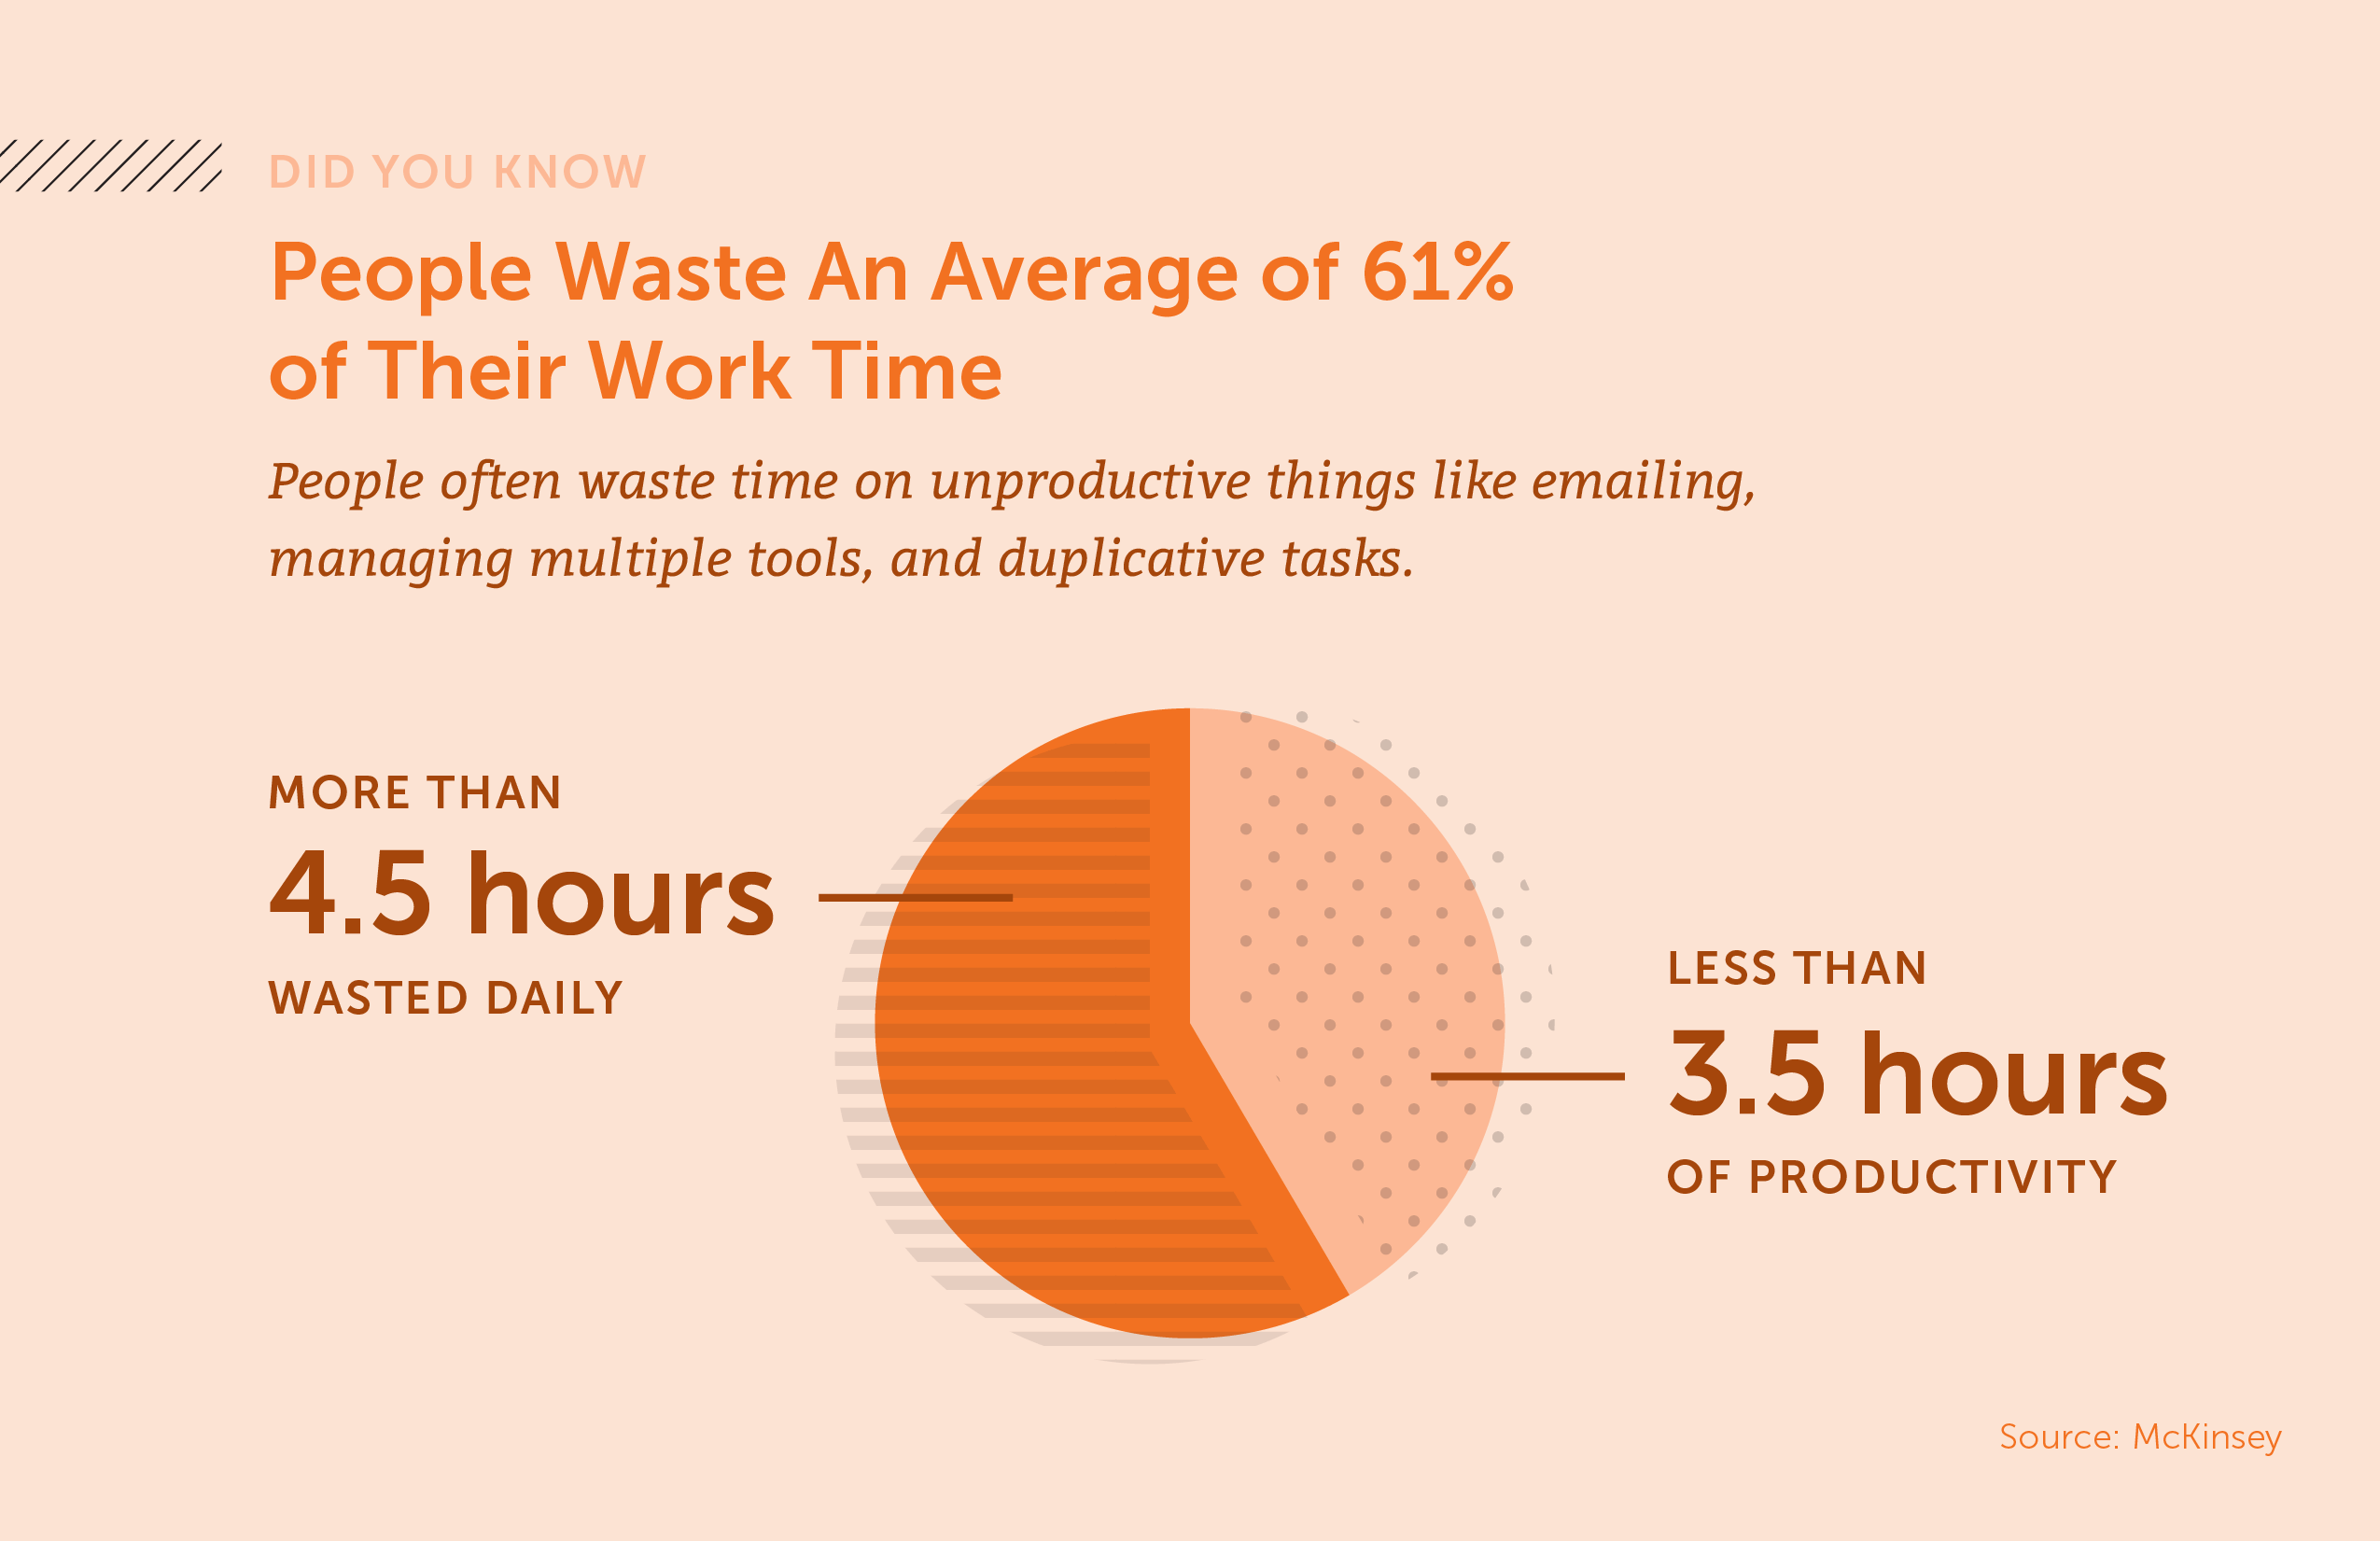 Did you know people waste an average of 61% of their work time